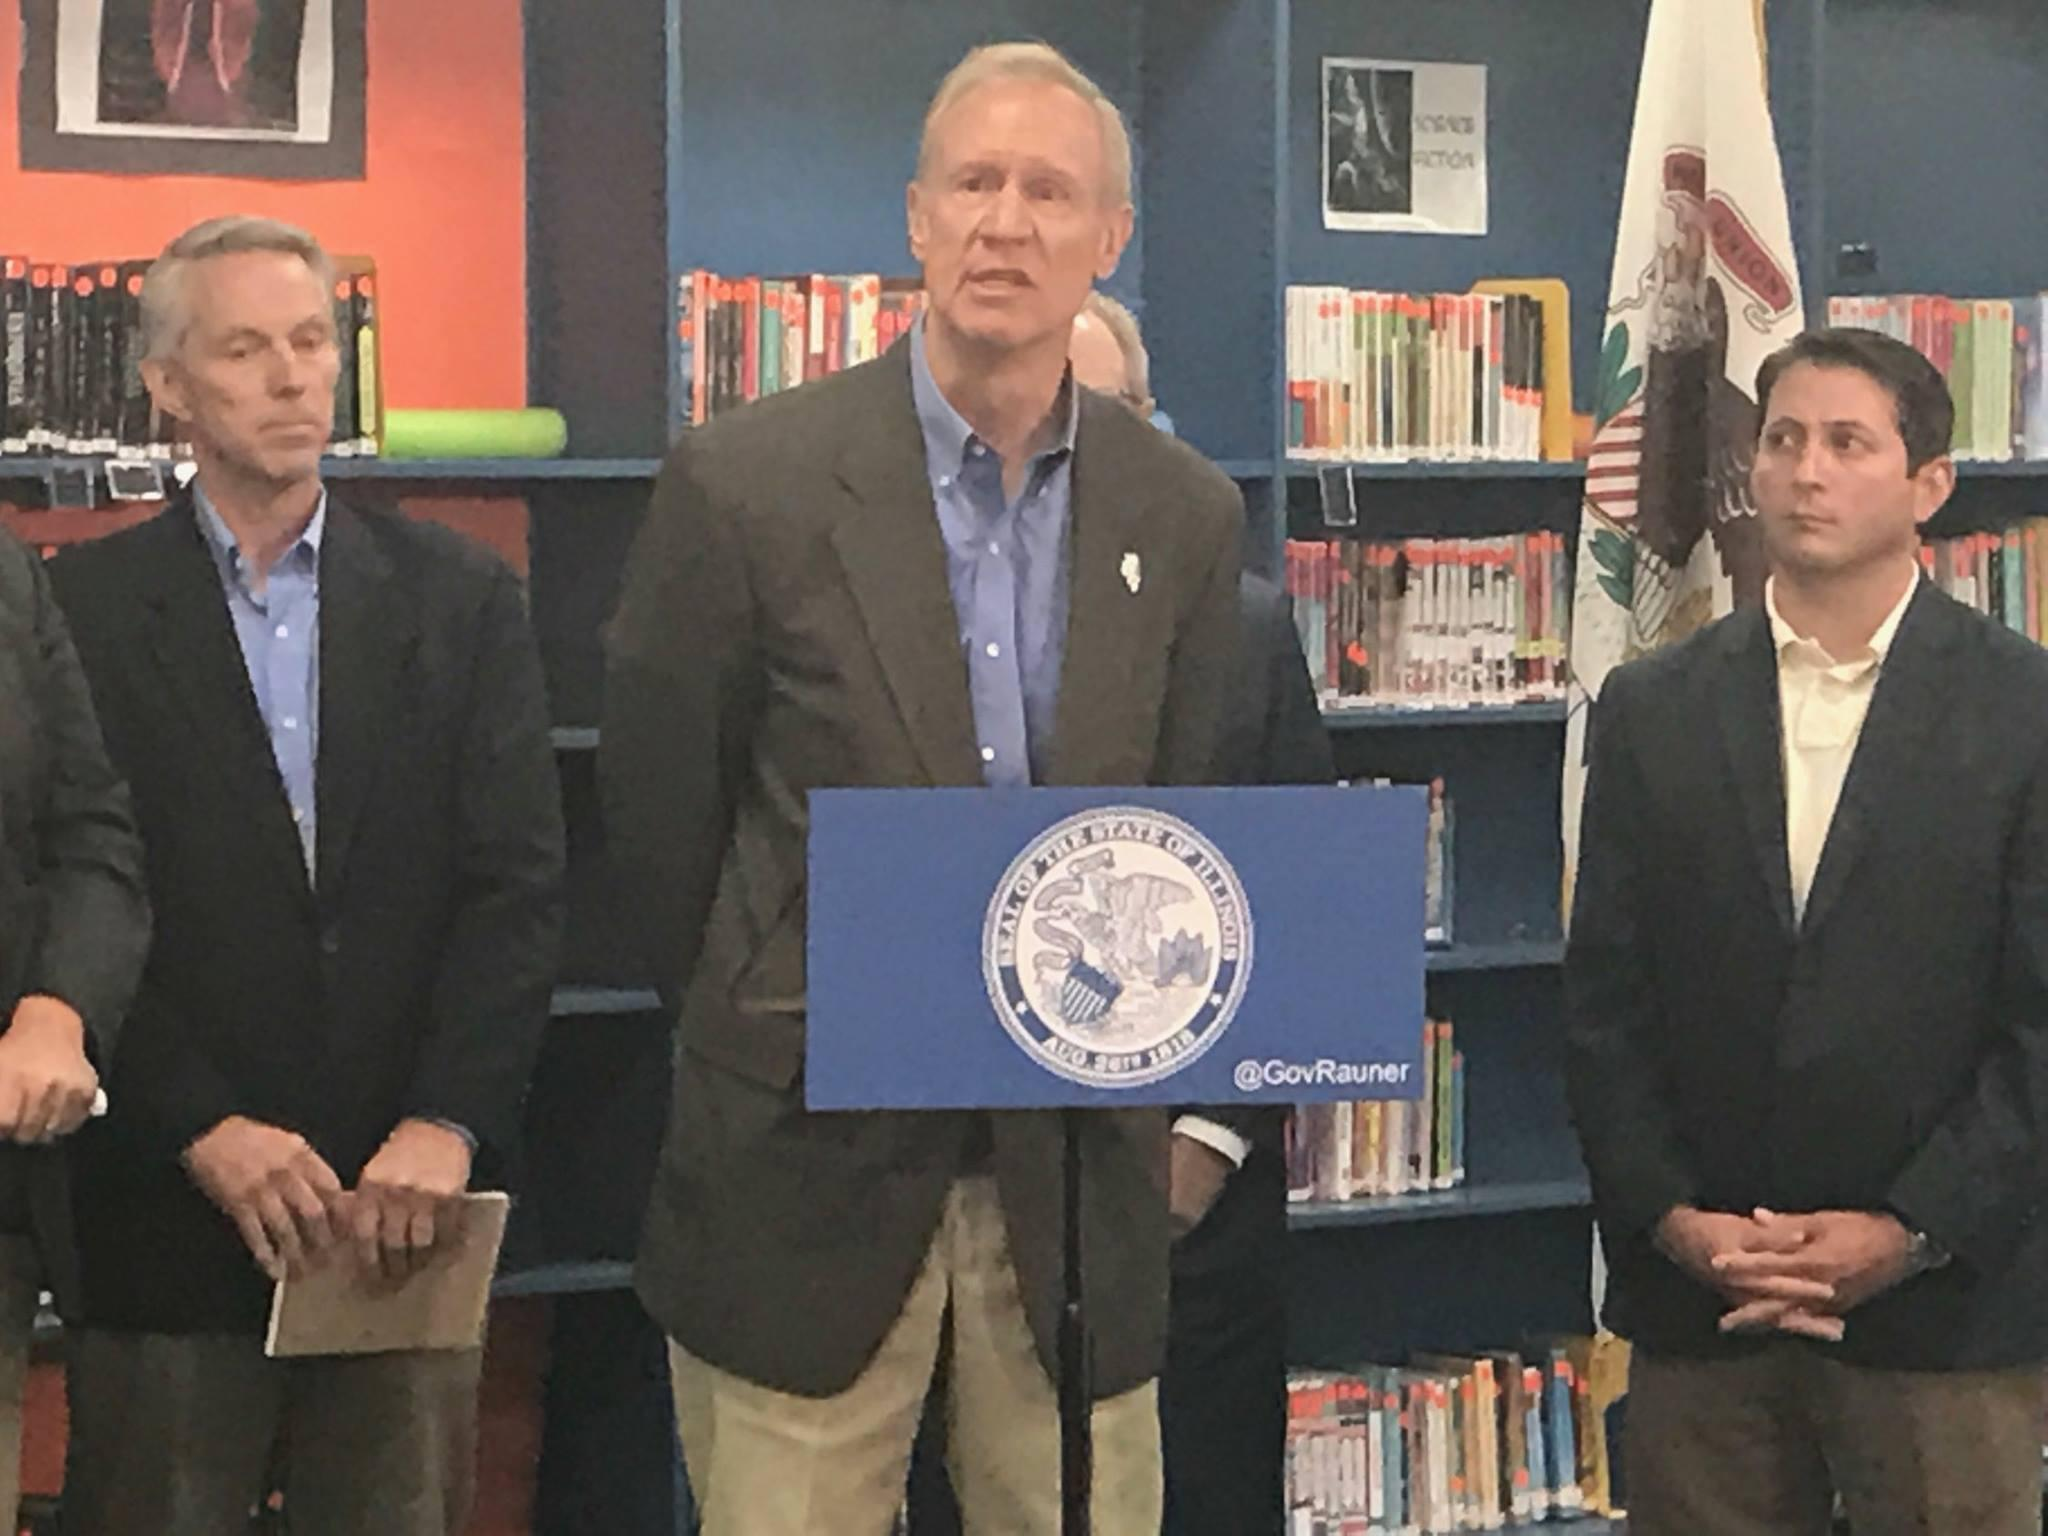 Republican Gov Pledges To Stop Chicago Education Funding Bill